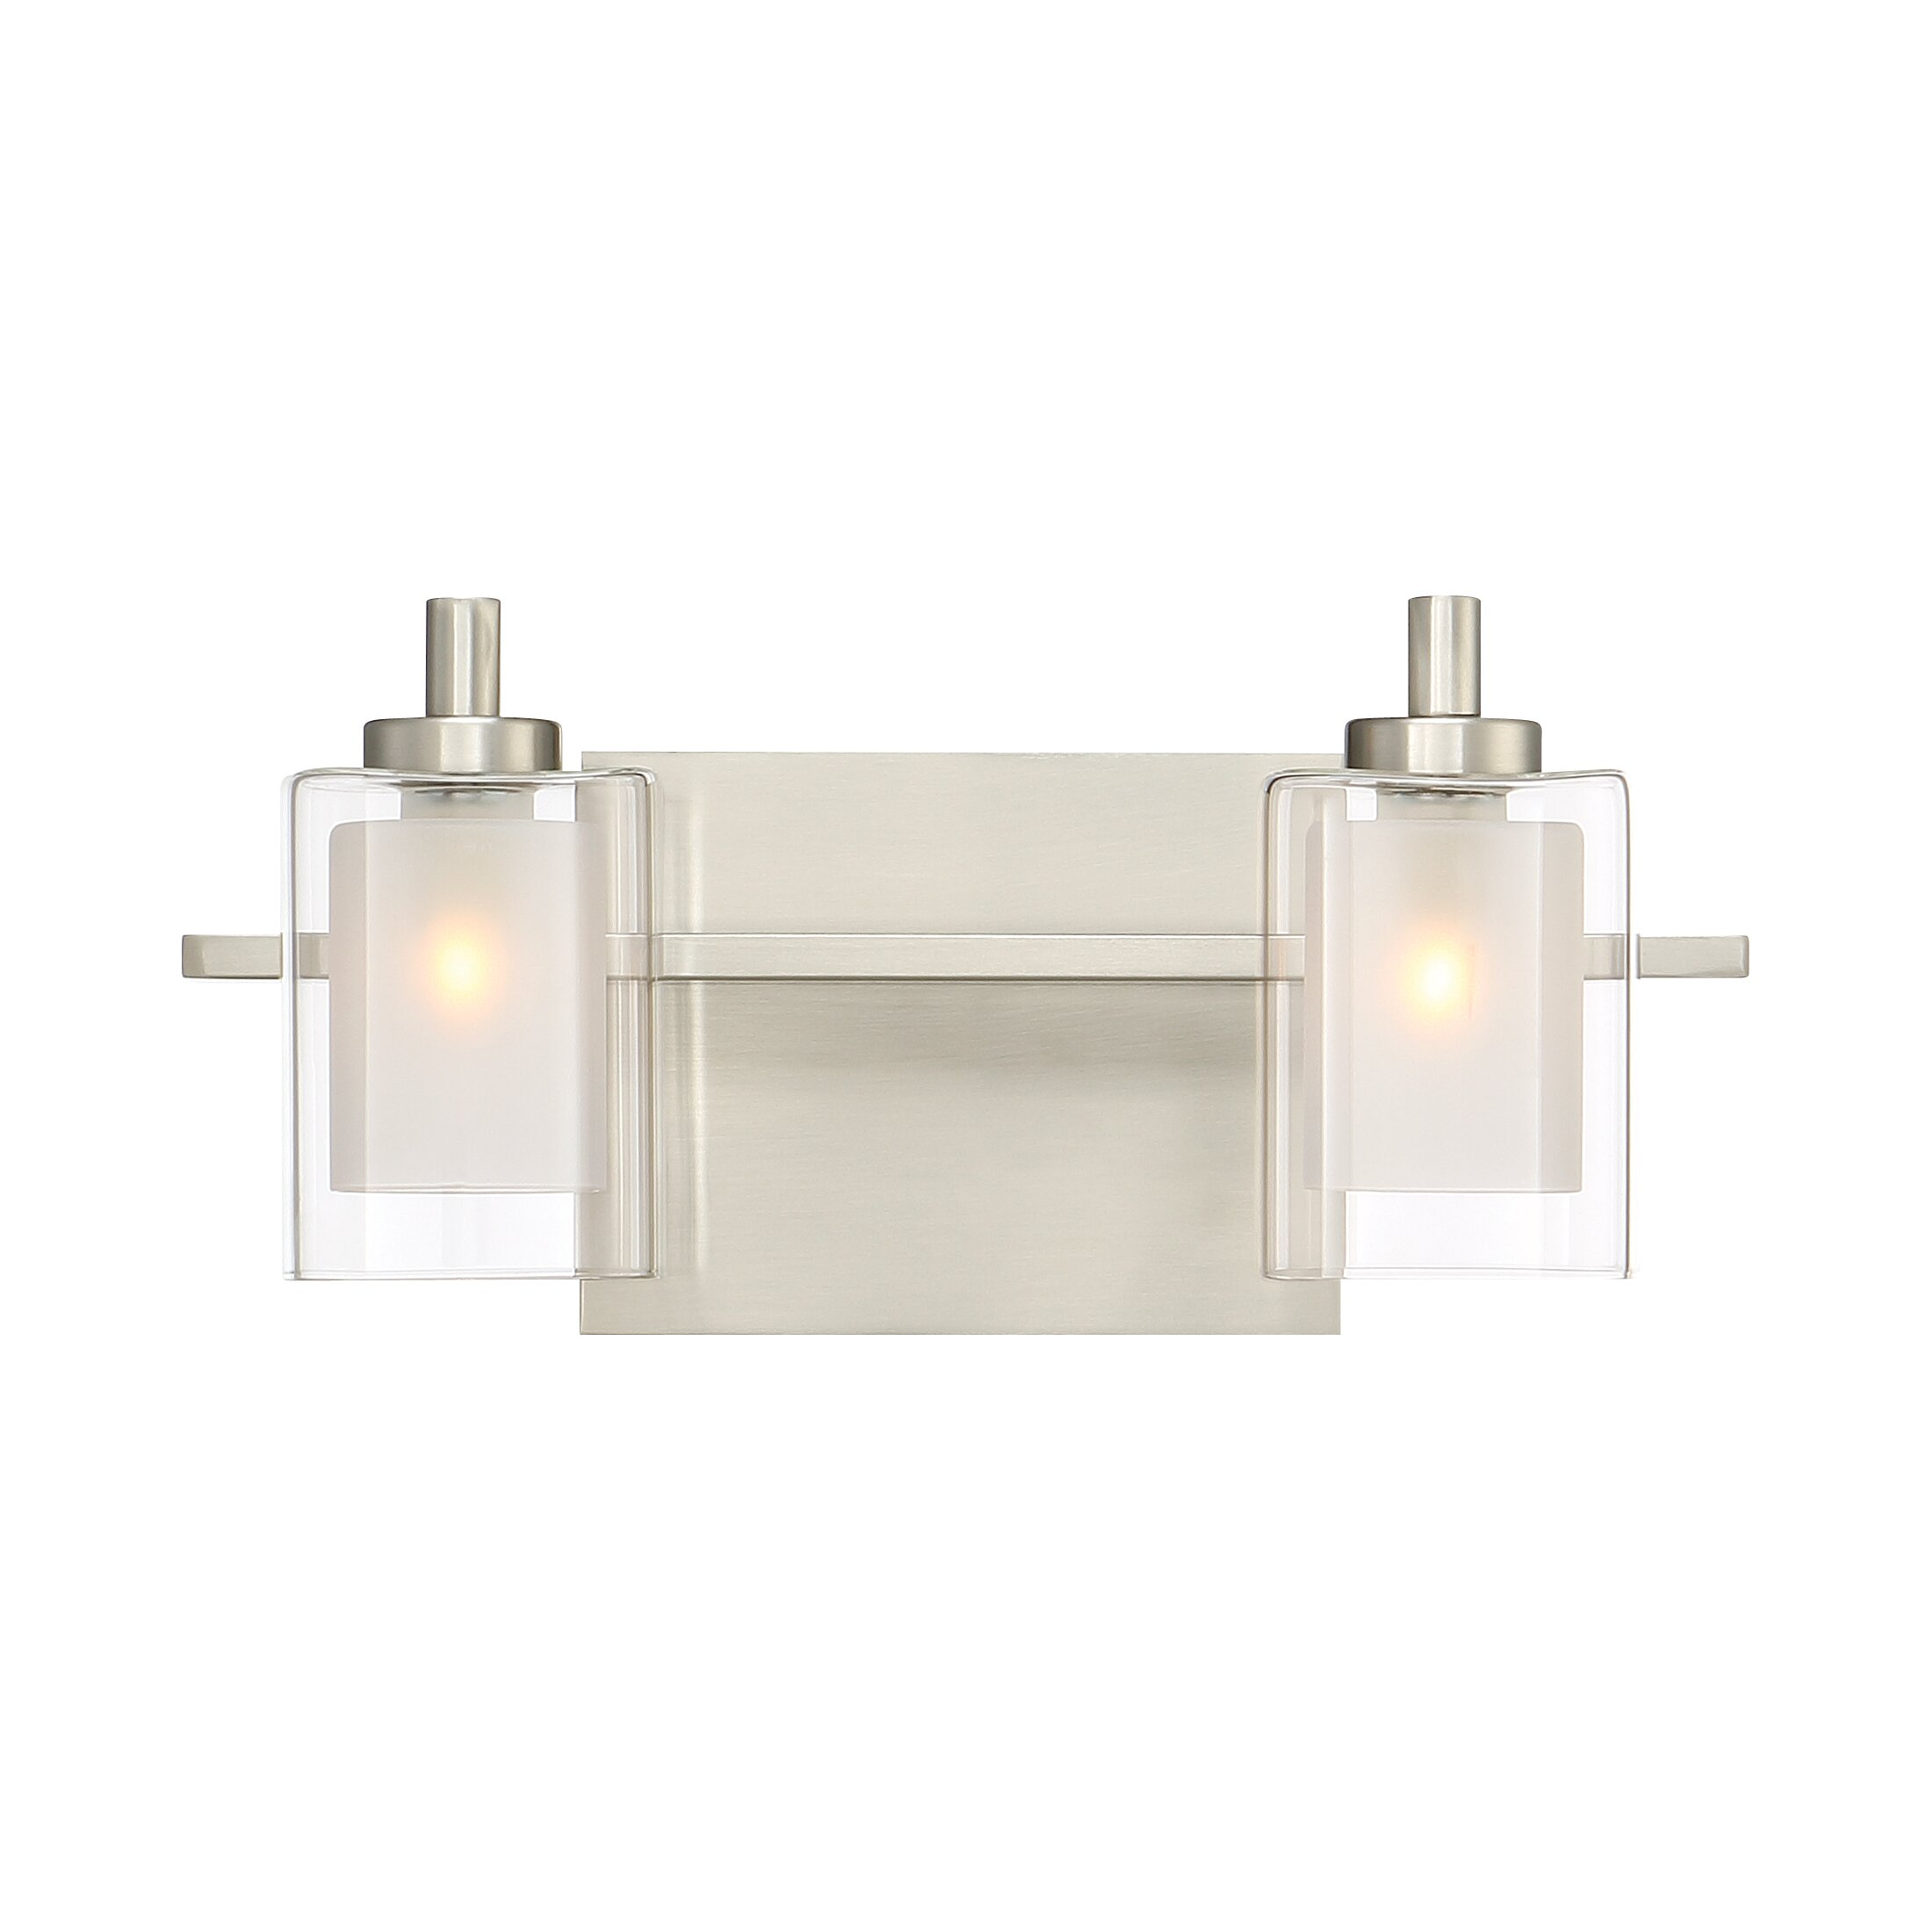 Bar Light Fixtures: Quoizel Kolt 2 Light Bath Bar & Reviews